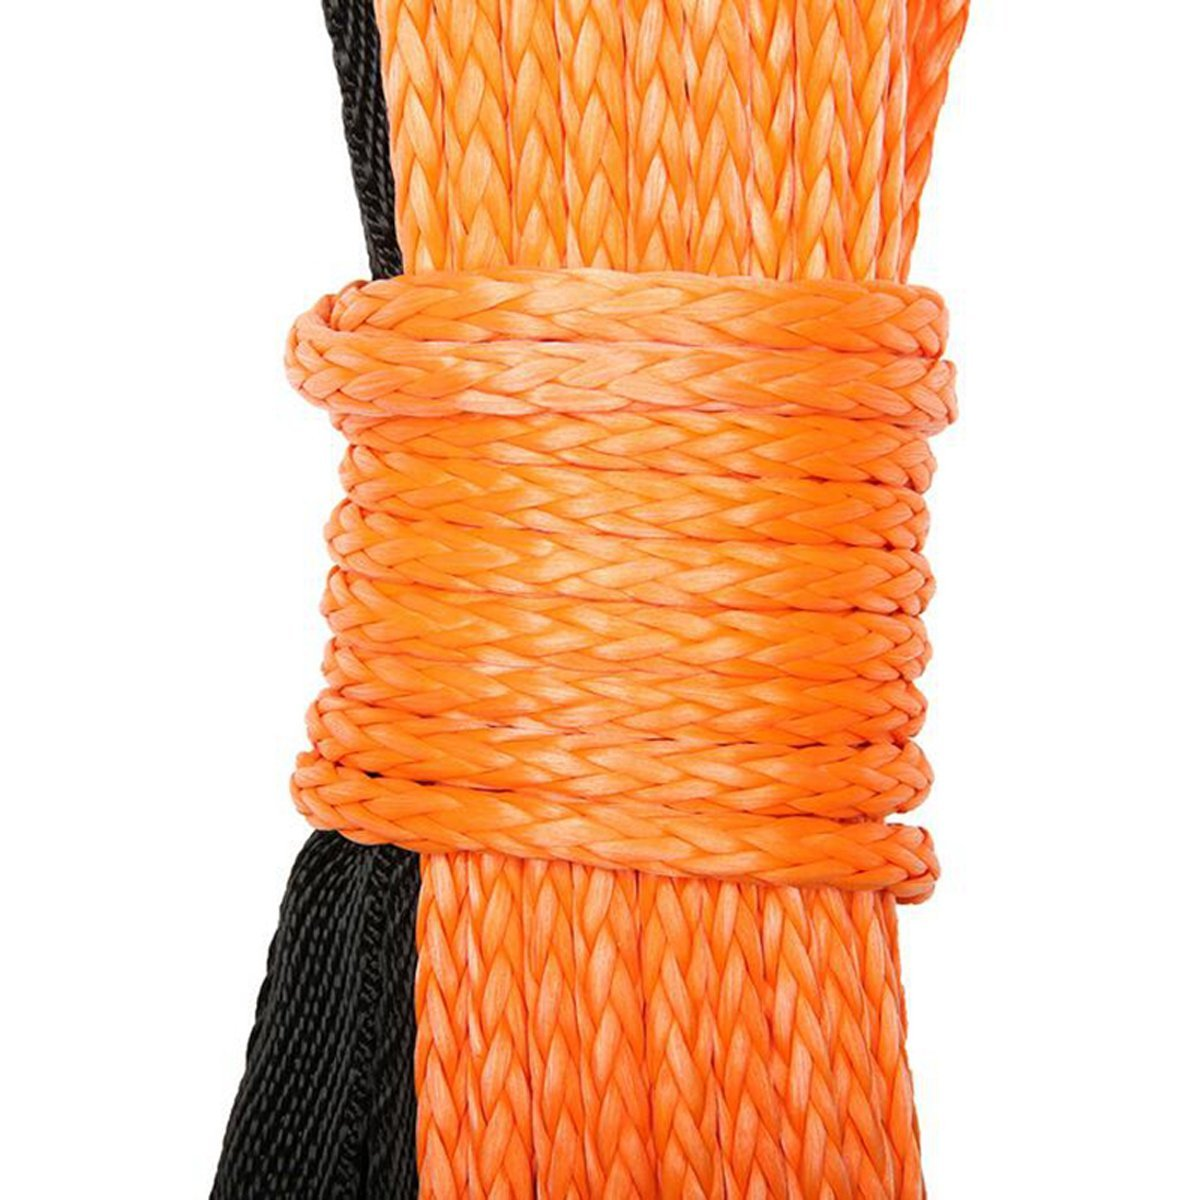 Orange MOEBULB Car Synthetic Winch Rope Kit 5700+LBs 50/'x1//4 Winch Line Cable Sheath Winches ATV UTV SUV Truck Boat Ramsey Stainless Steel Thimble